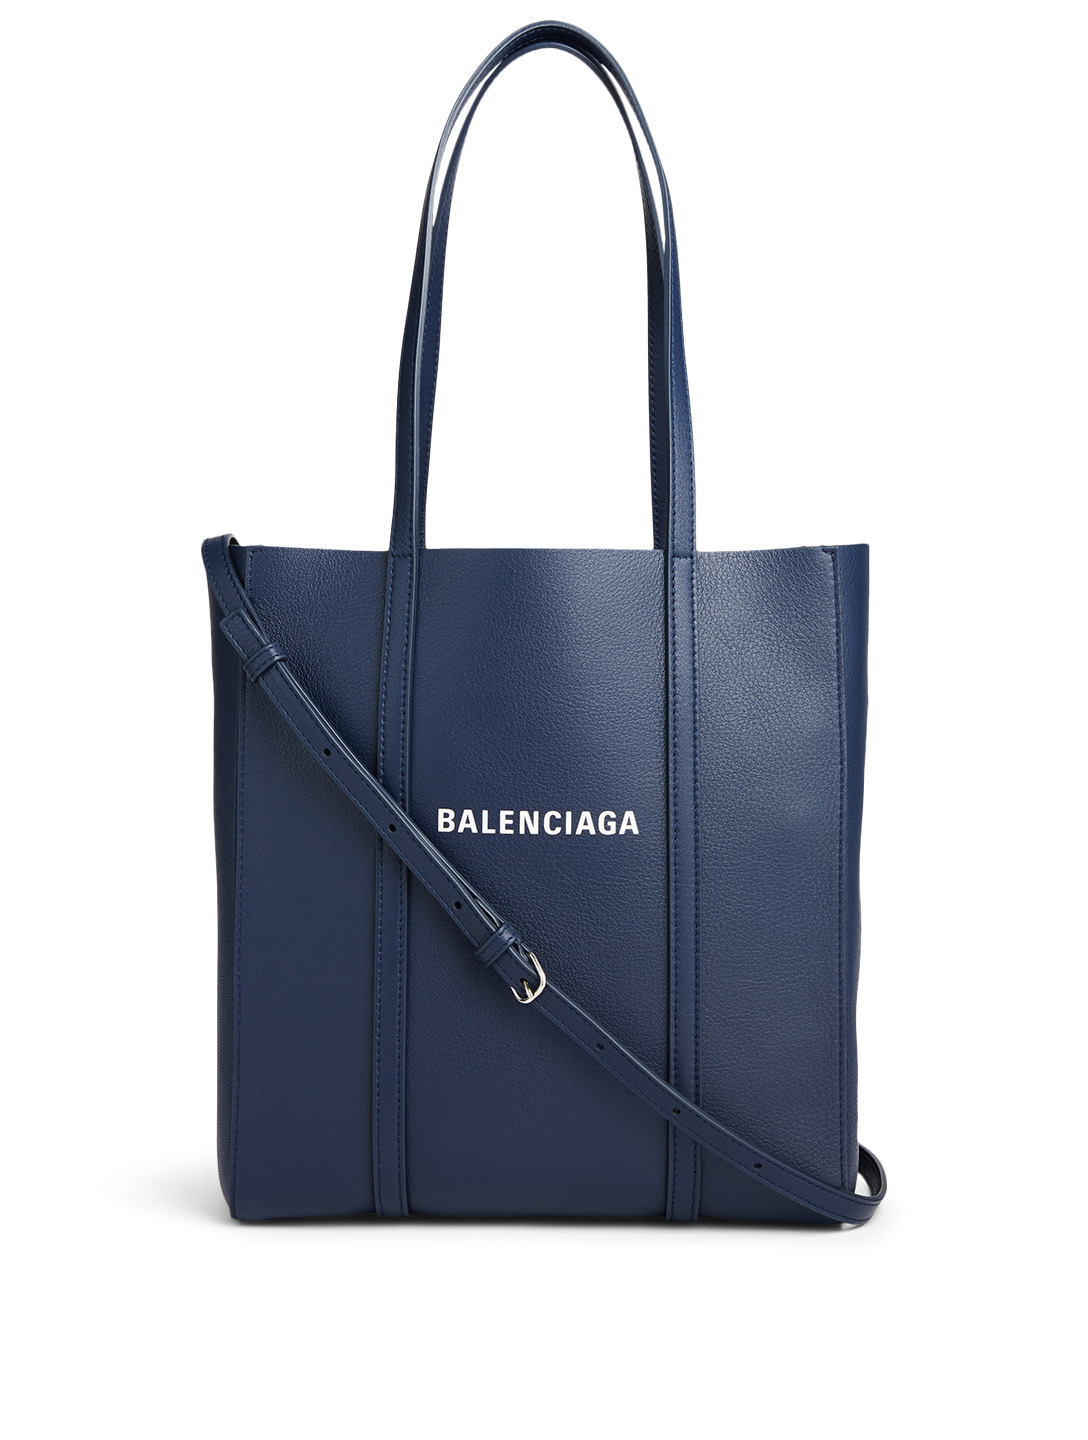 BALENCIAGA XS Everyday Leather Tote Bag Women's Blue